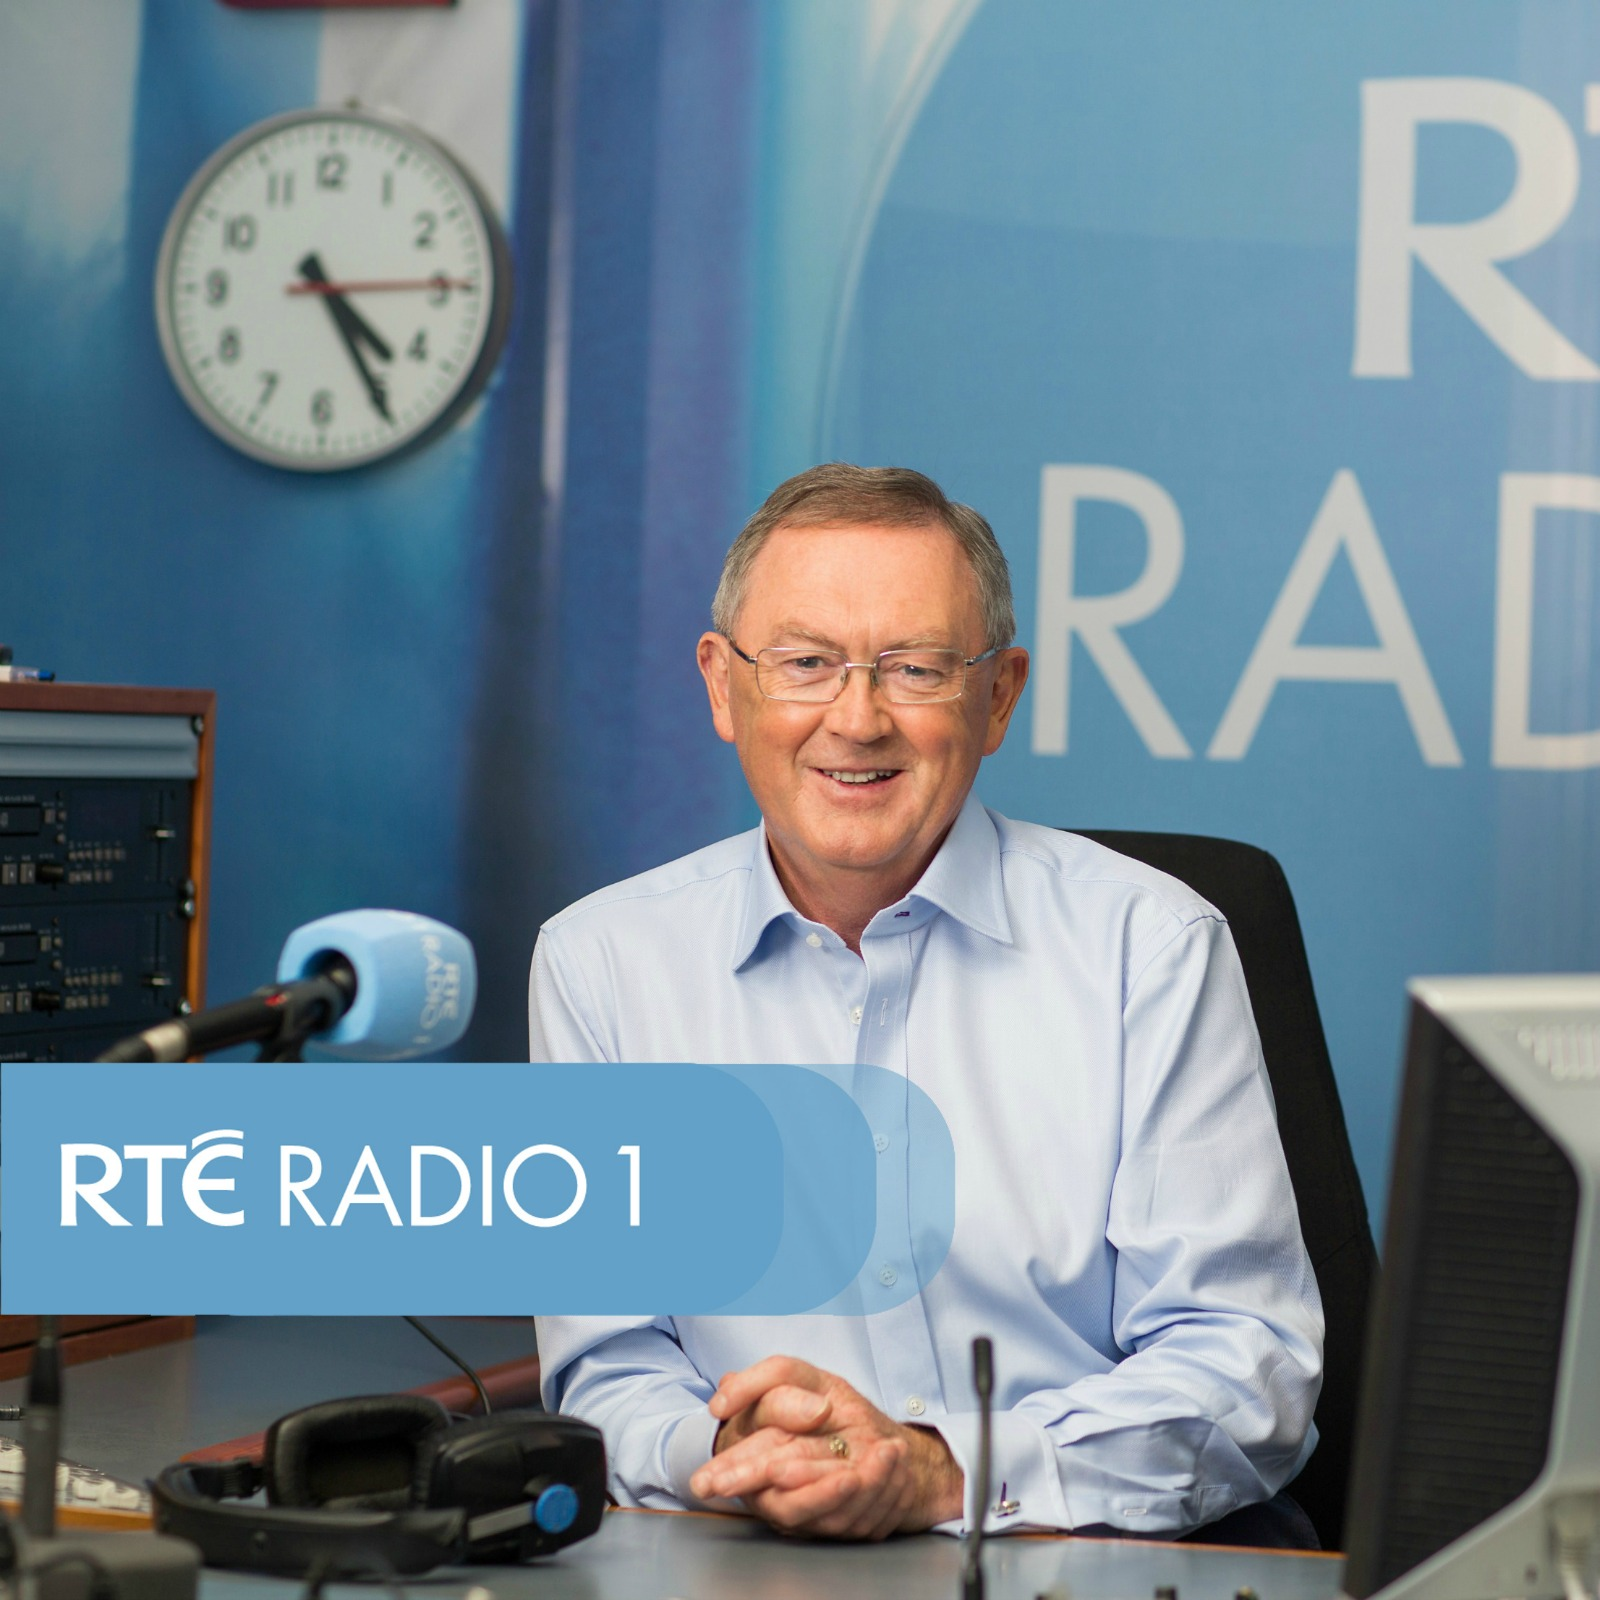 17.05.2018 Katie Ascough On Today With Seán O'Rourke